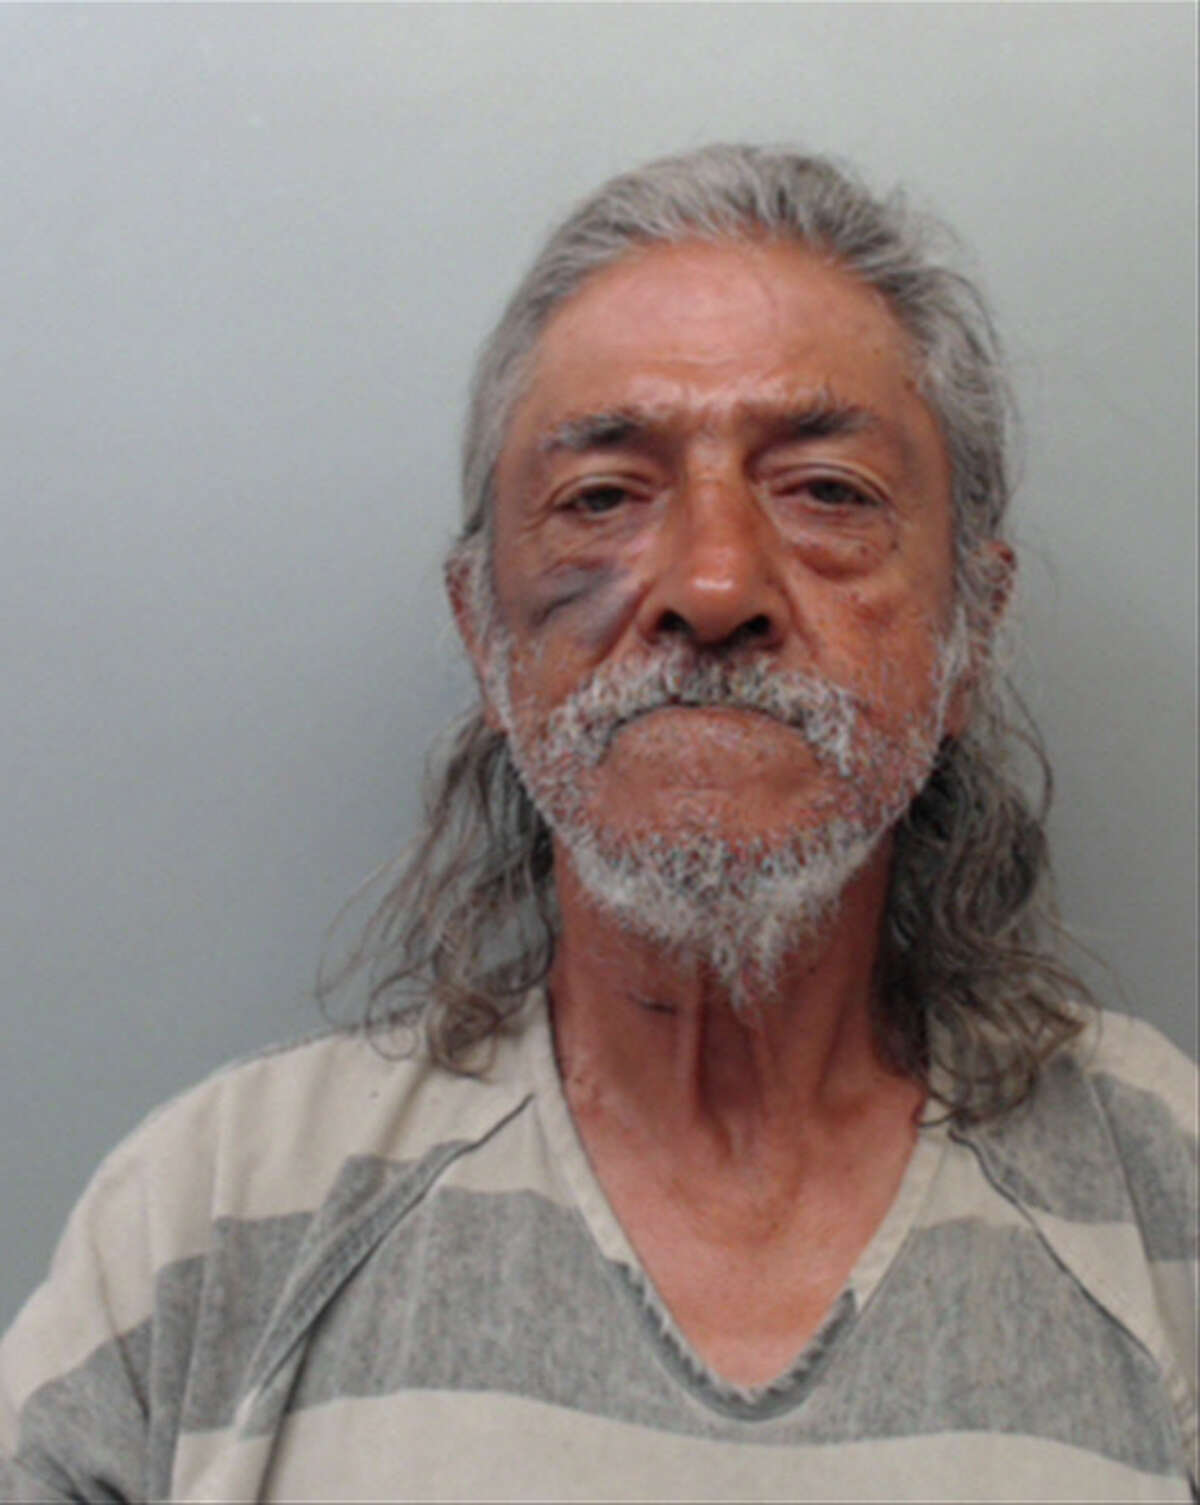 Francisco Javier Aranda, 67, was charged with aggravated assault with a deadly weapon.